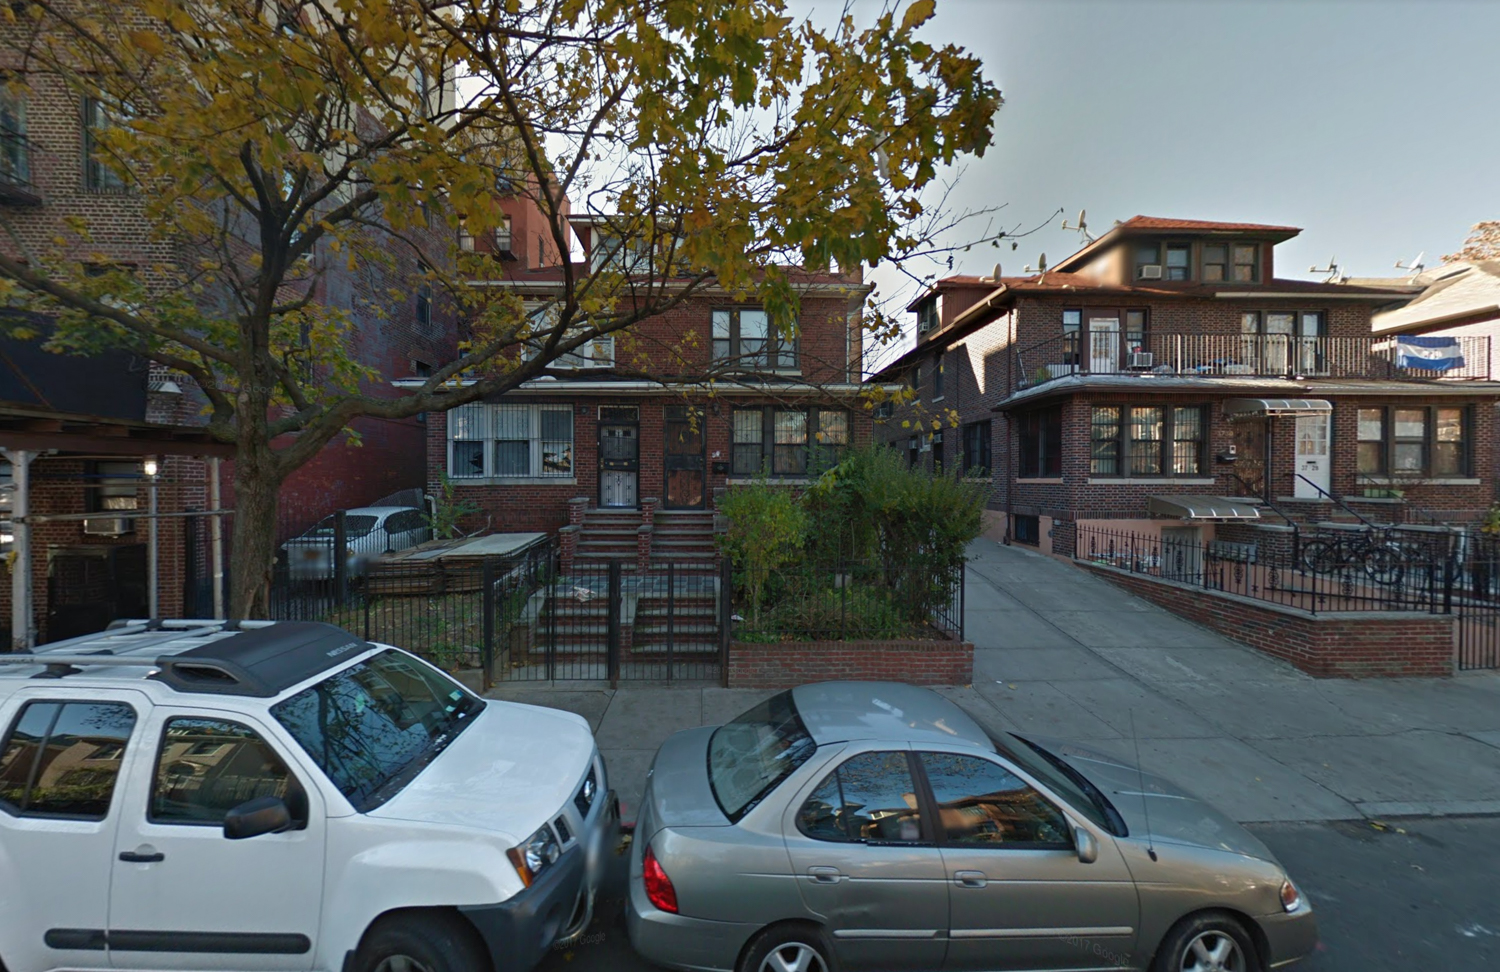 37-32 89th Street, via Google Maps